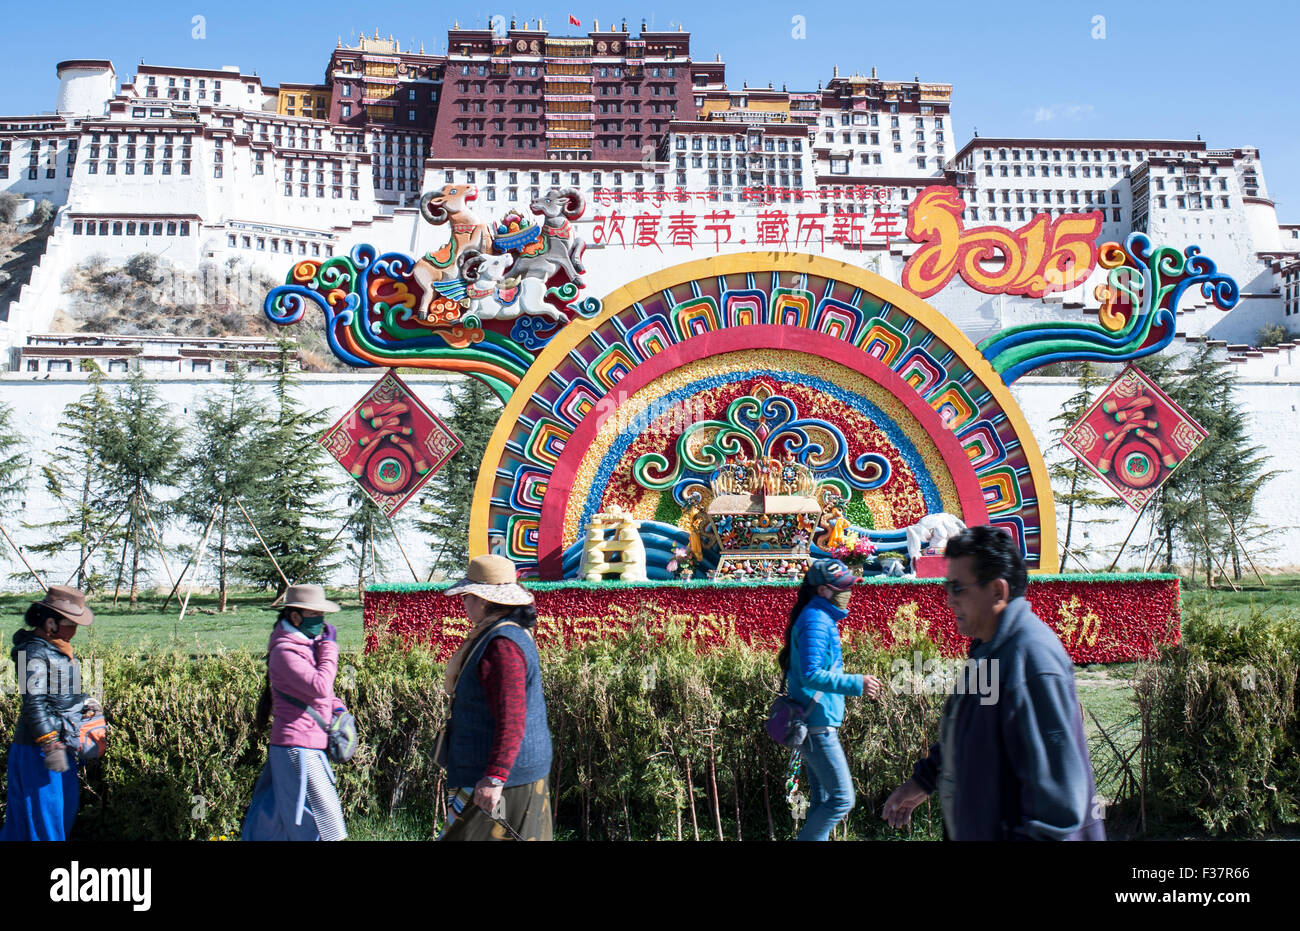 The Potala Palace in the city of Lhasa Tibet China Asia - Stock Image